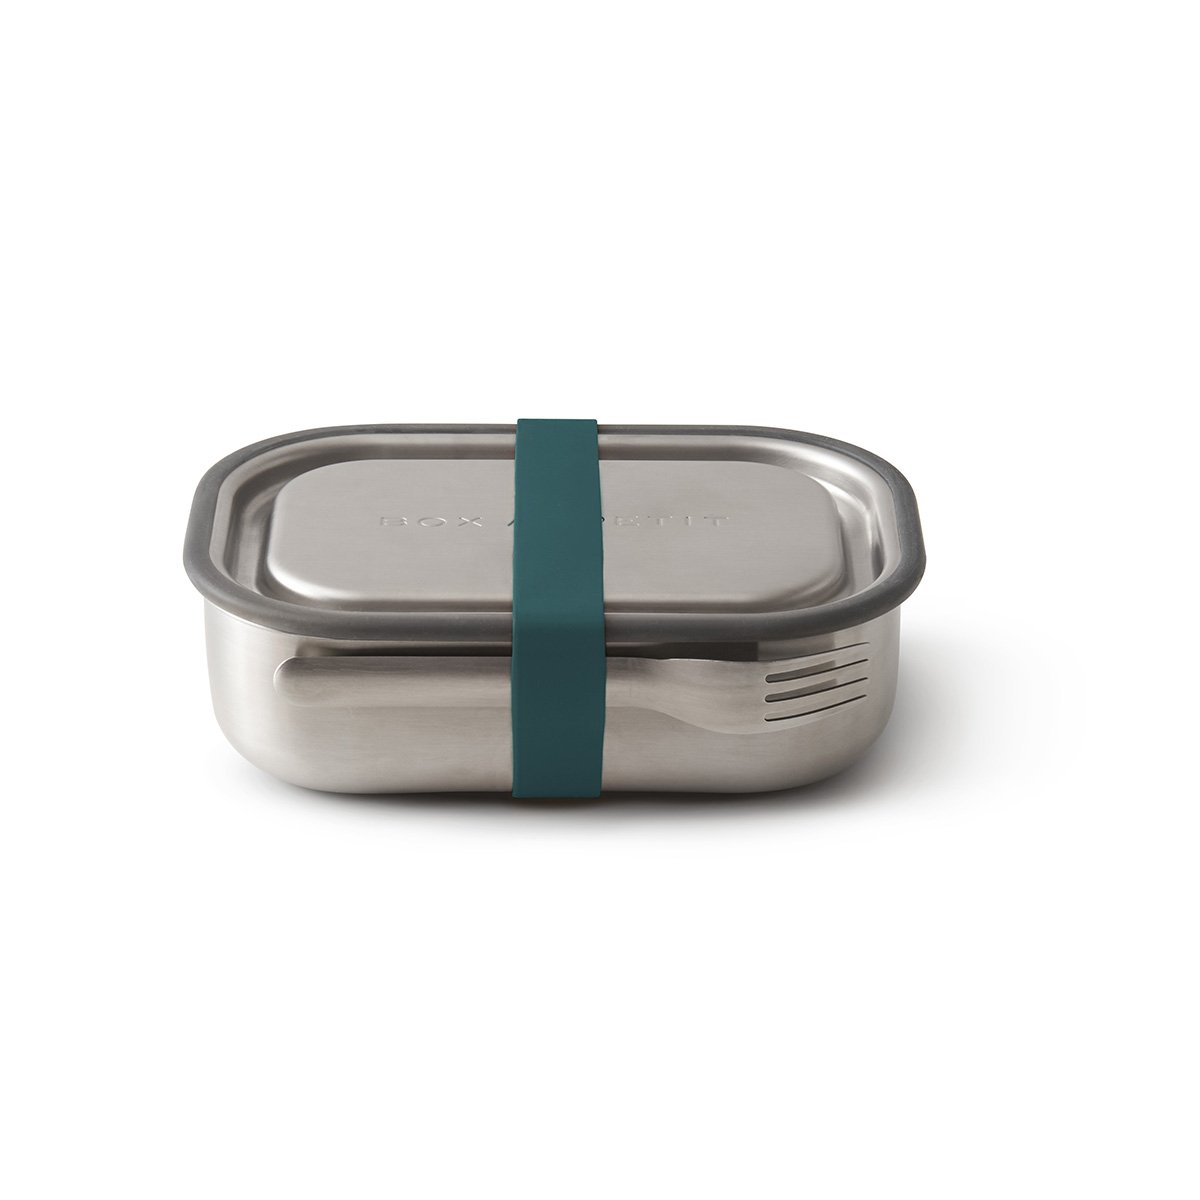 Stainless Steel Lunch Box by Black and Blum Black + Blum Lunch Boxes and Bags Ocean Blue at Little Earth Nest Eco Shop